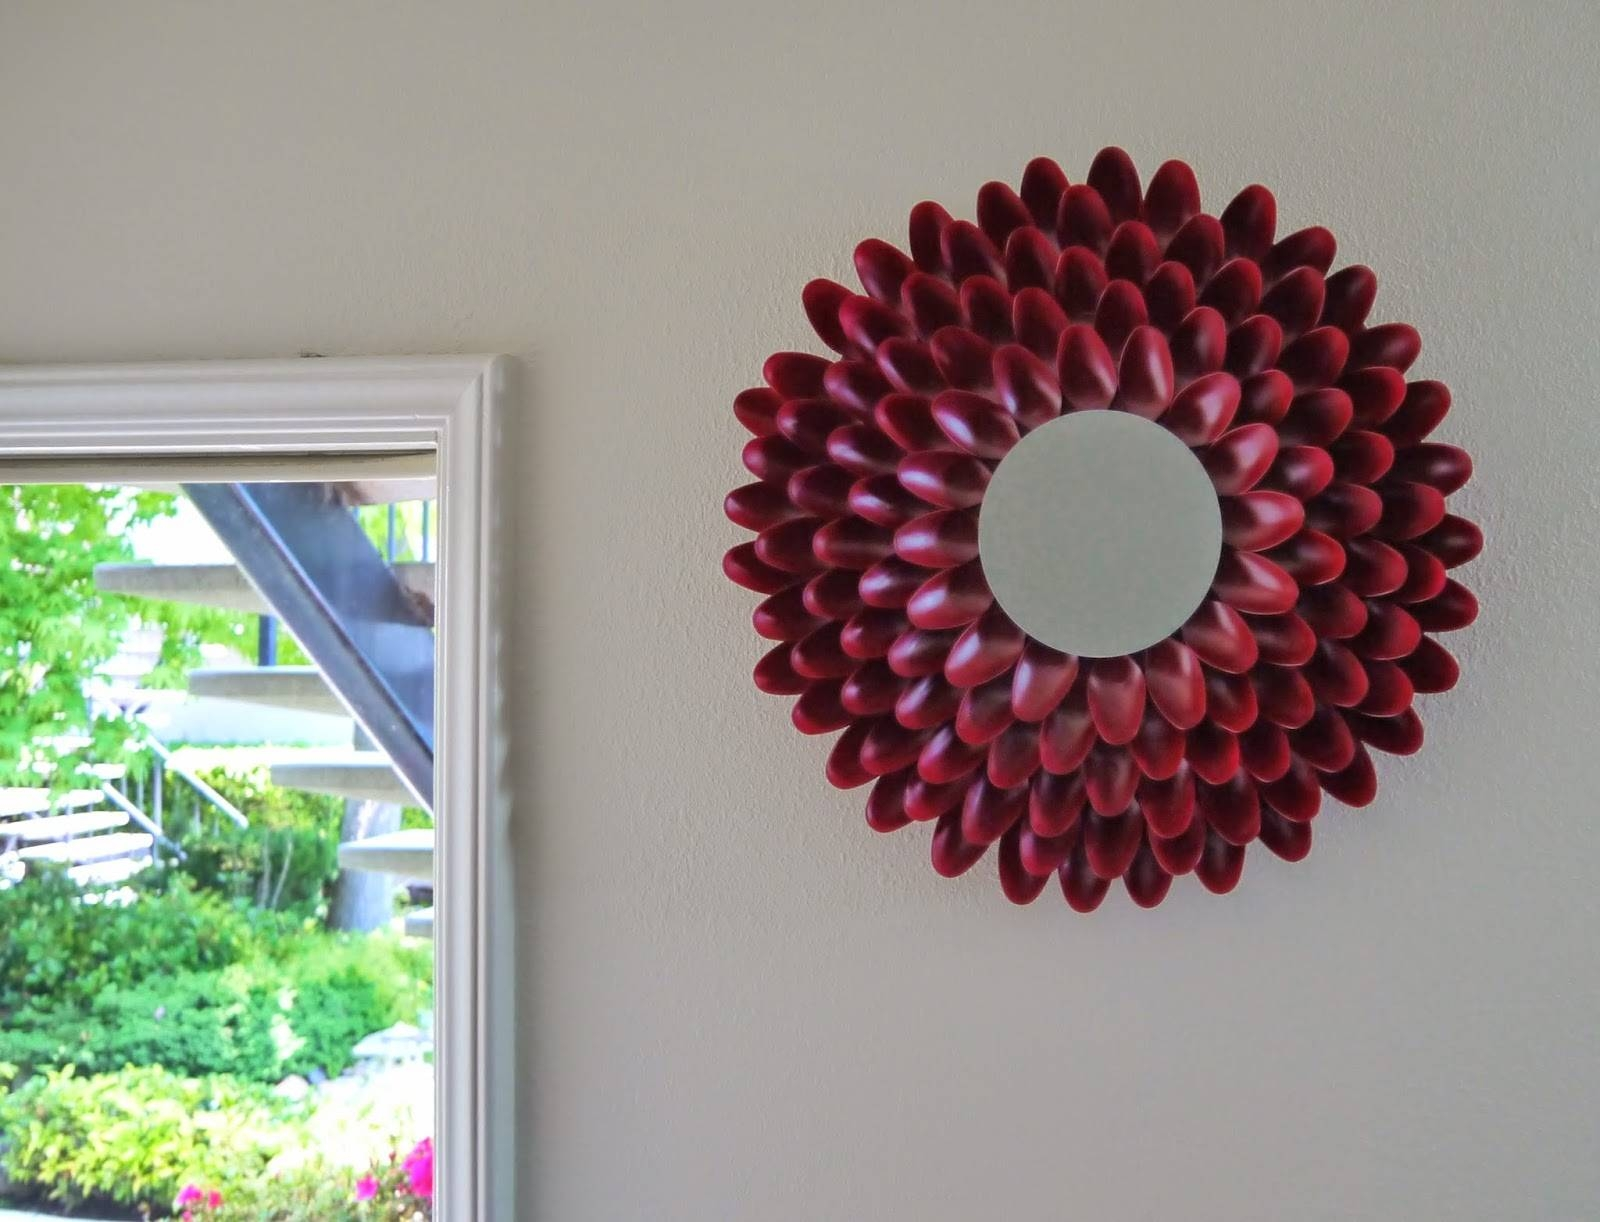 Diy Addiction: Mirror Wall Art – Chrysanthemum Flower Inside Most Current Diy Mirror Wall Art (View 6 of 20)